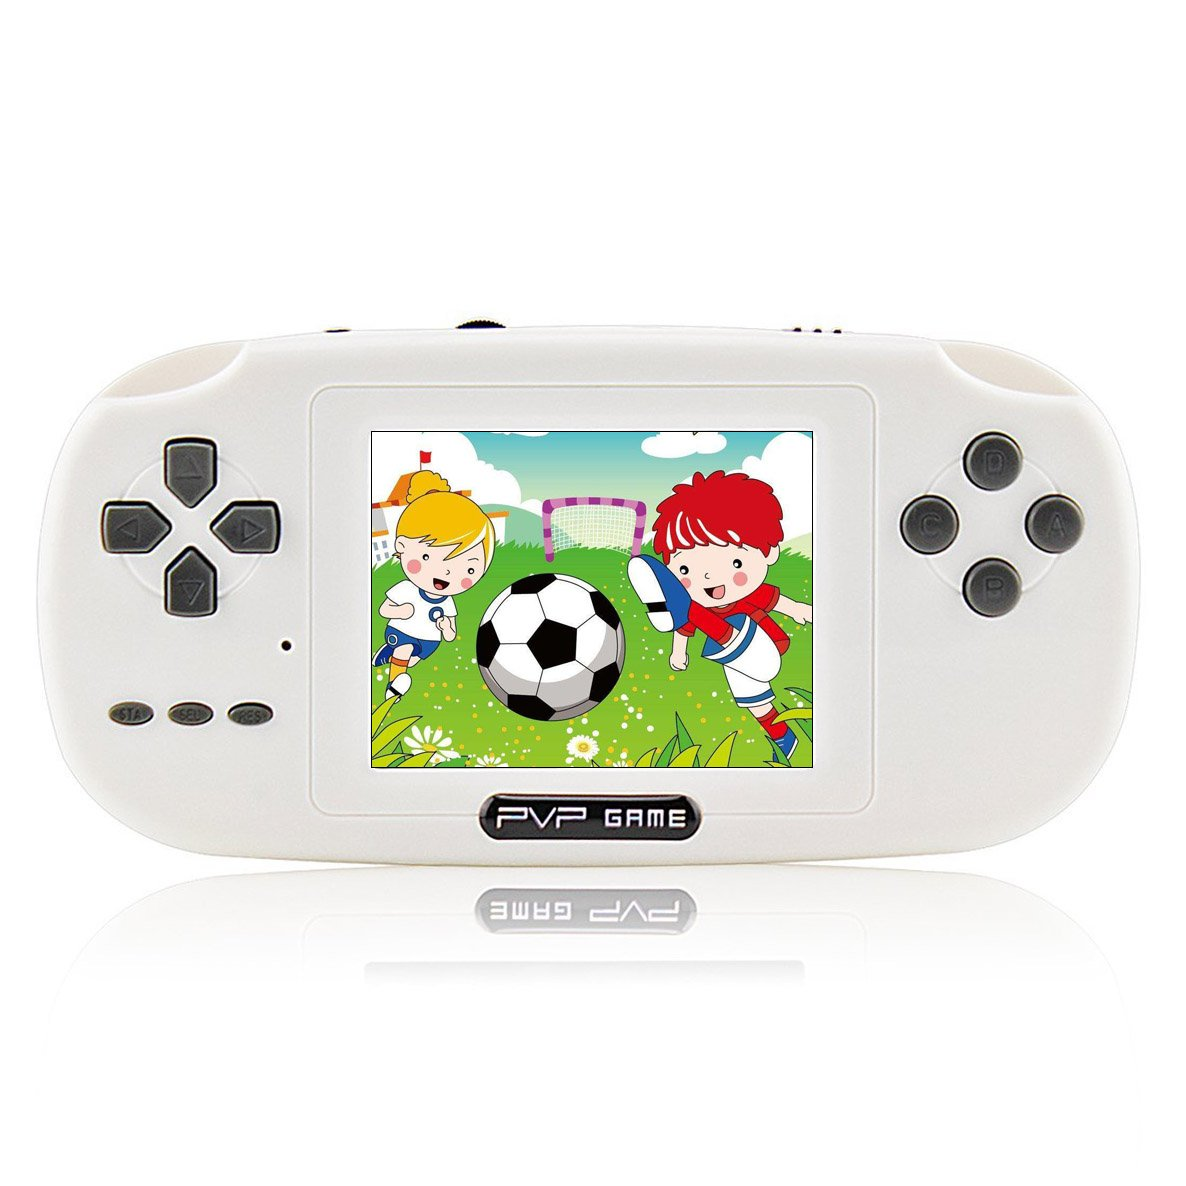 """Anbernic Handheld Game Console Game Console 2.8"""" 168 Games LCD PVP Game  Player Classic Game Console 1 USB Charge Presents for Children-White:  Amazon.co.uk: ..."""